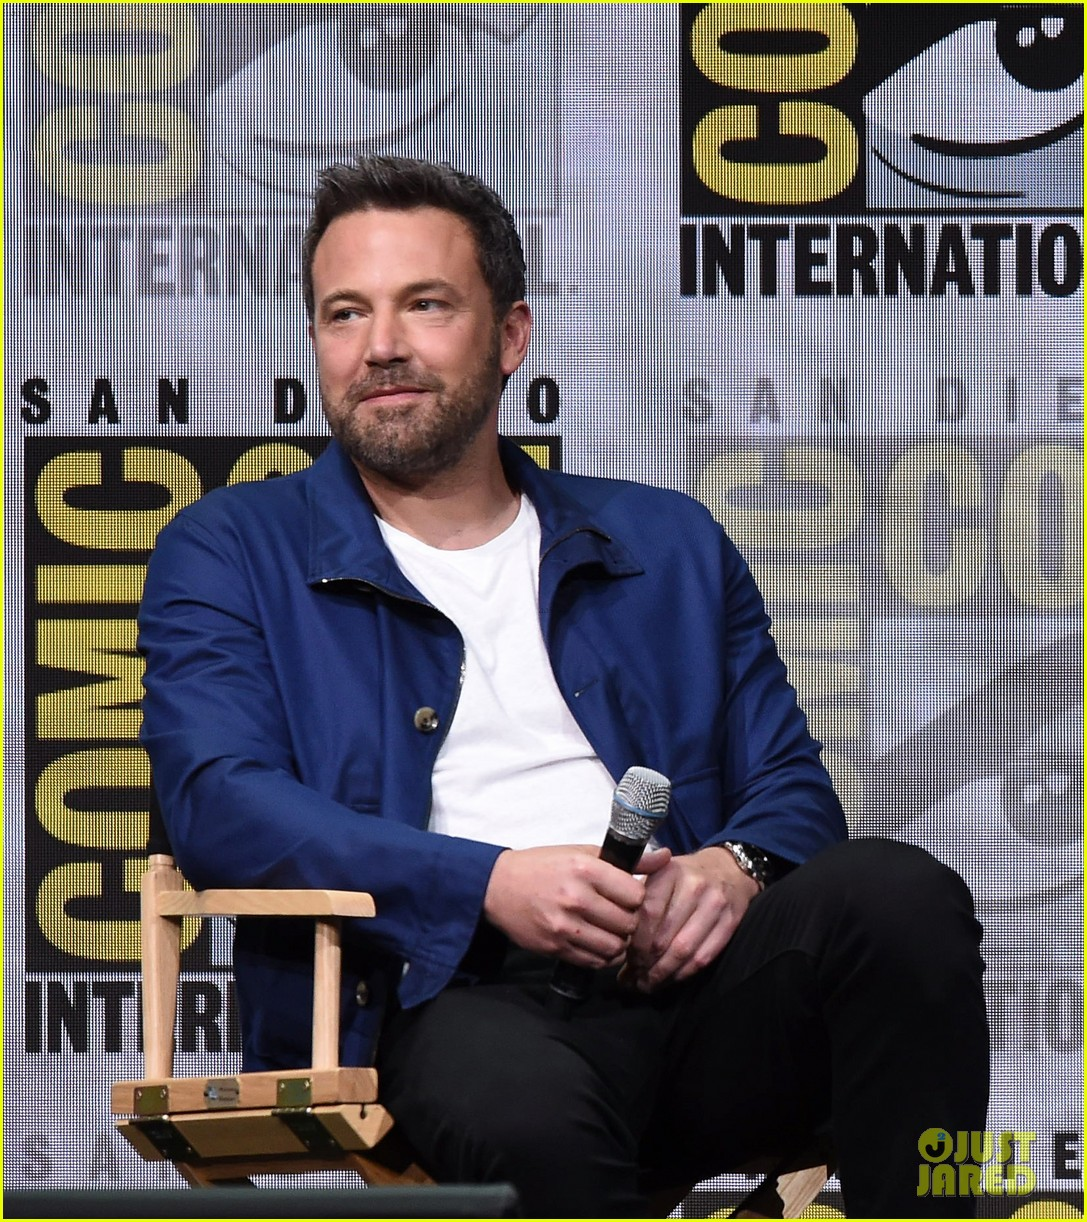 gal-gadot-ben-affleck-justice-league-comic-con-panel-20